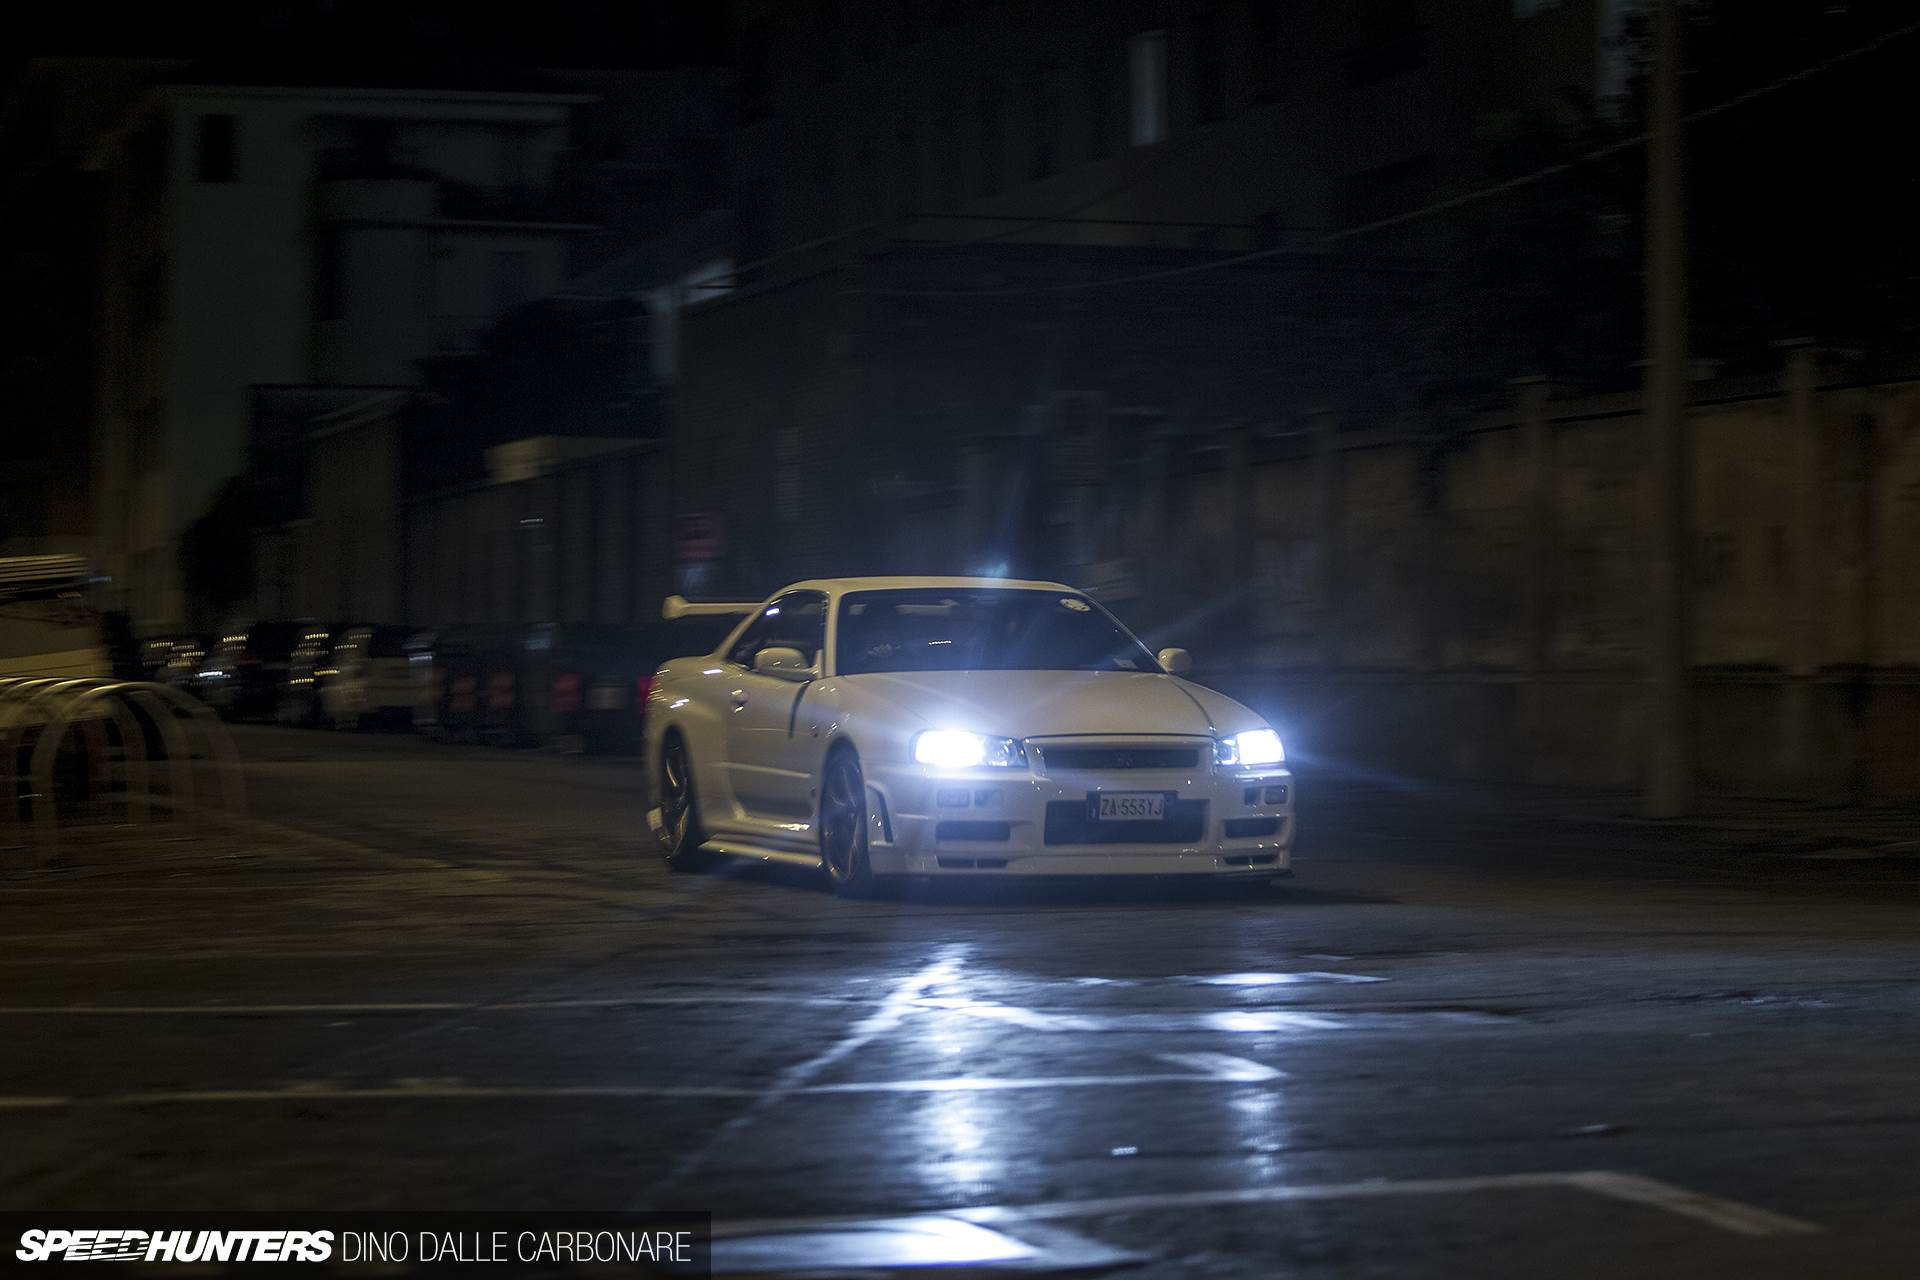 Good Wallpaper Night Car - Nissan-Skyline-GTR-Wallpapers-065  You Should Have.jpg